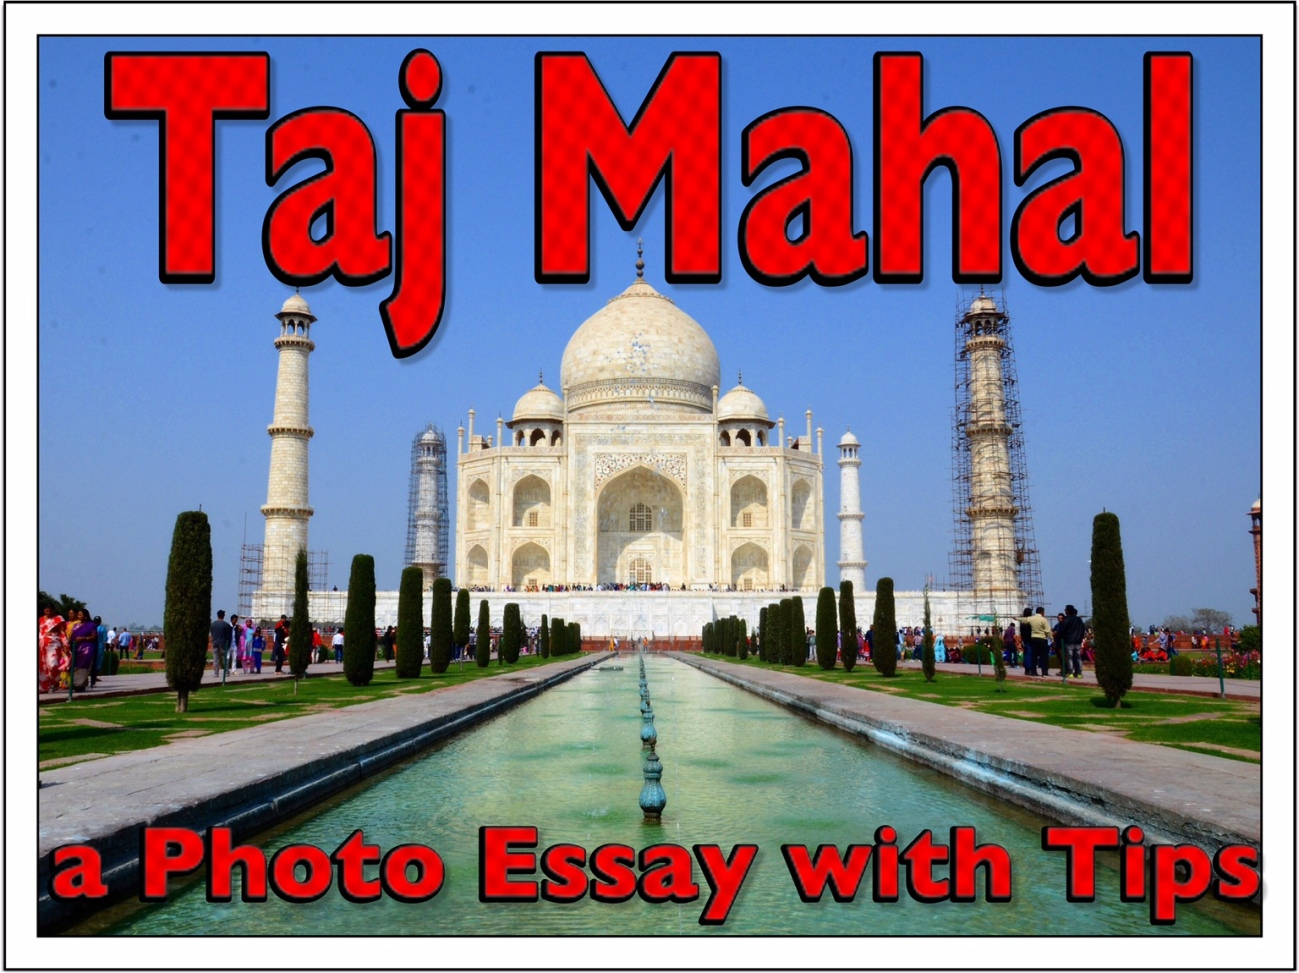 Taj Mahal - Advert